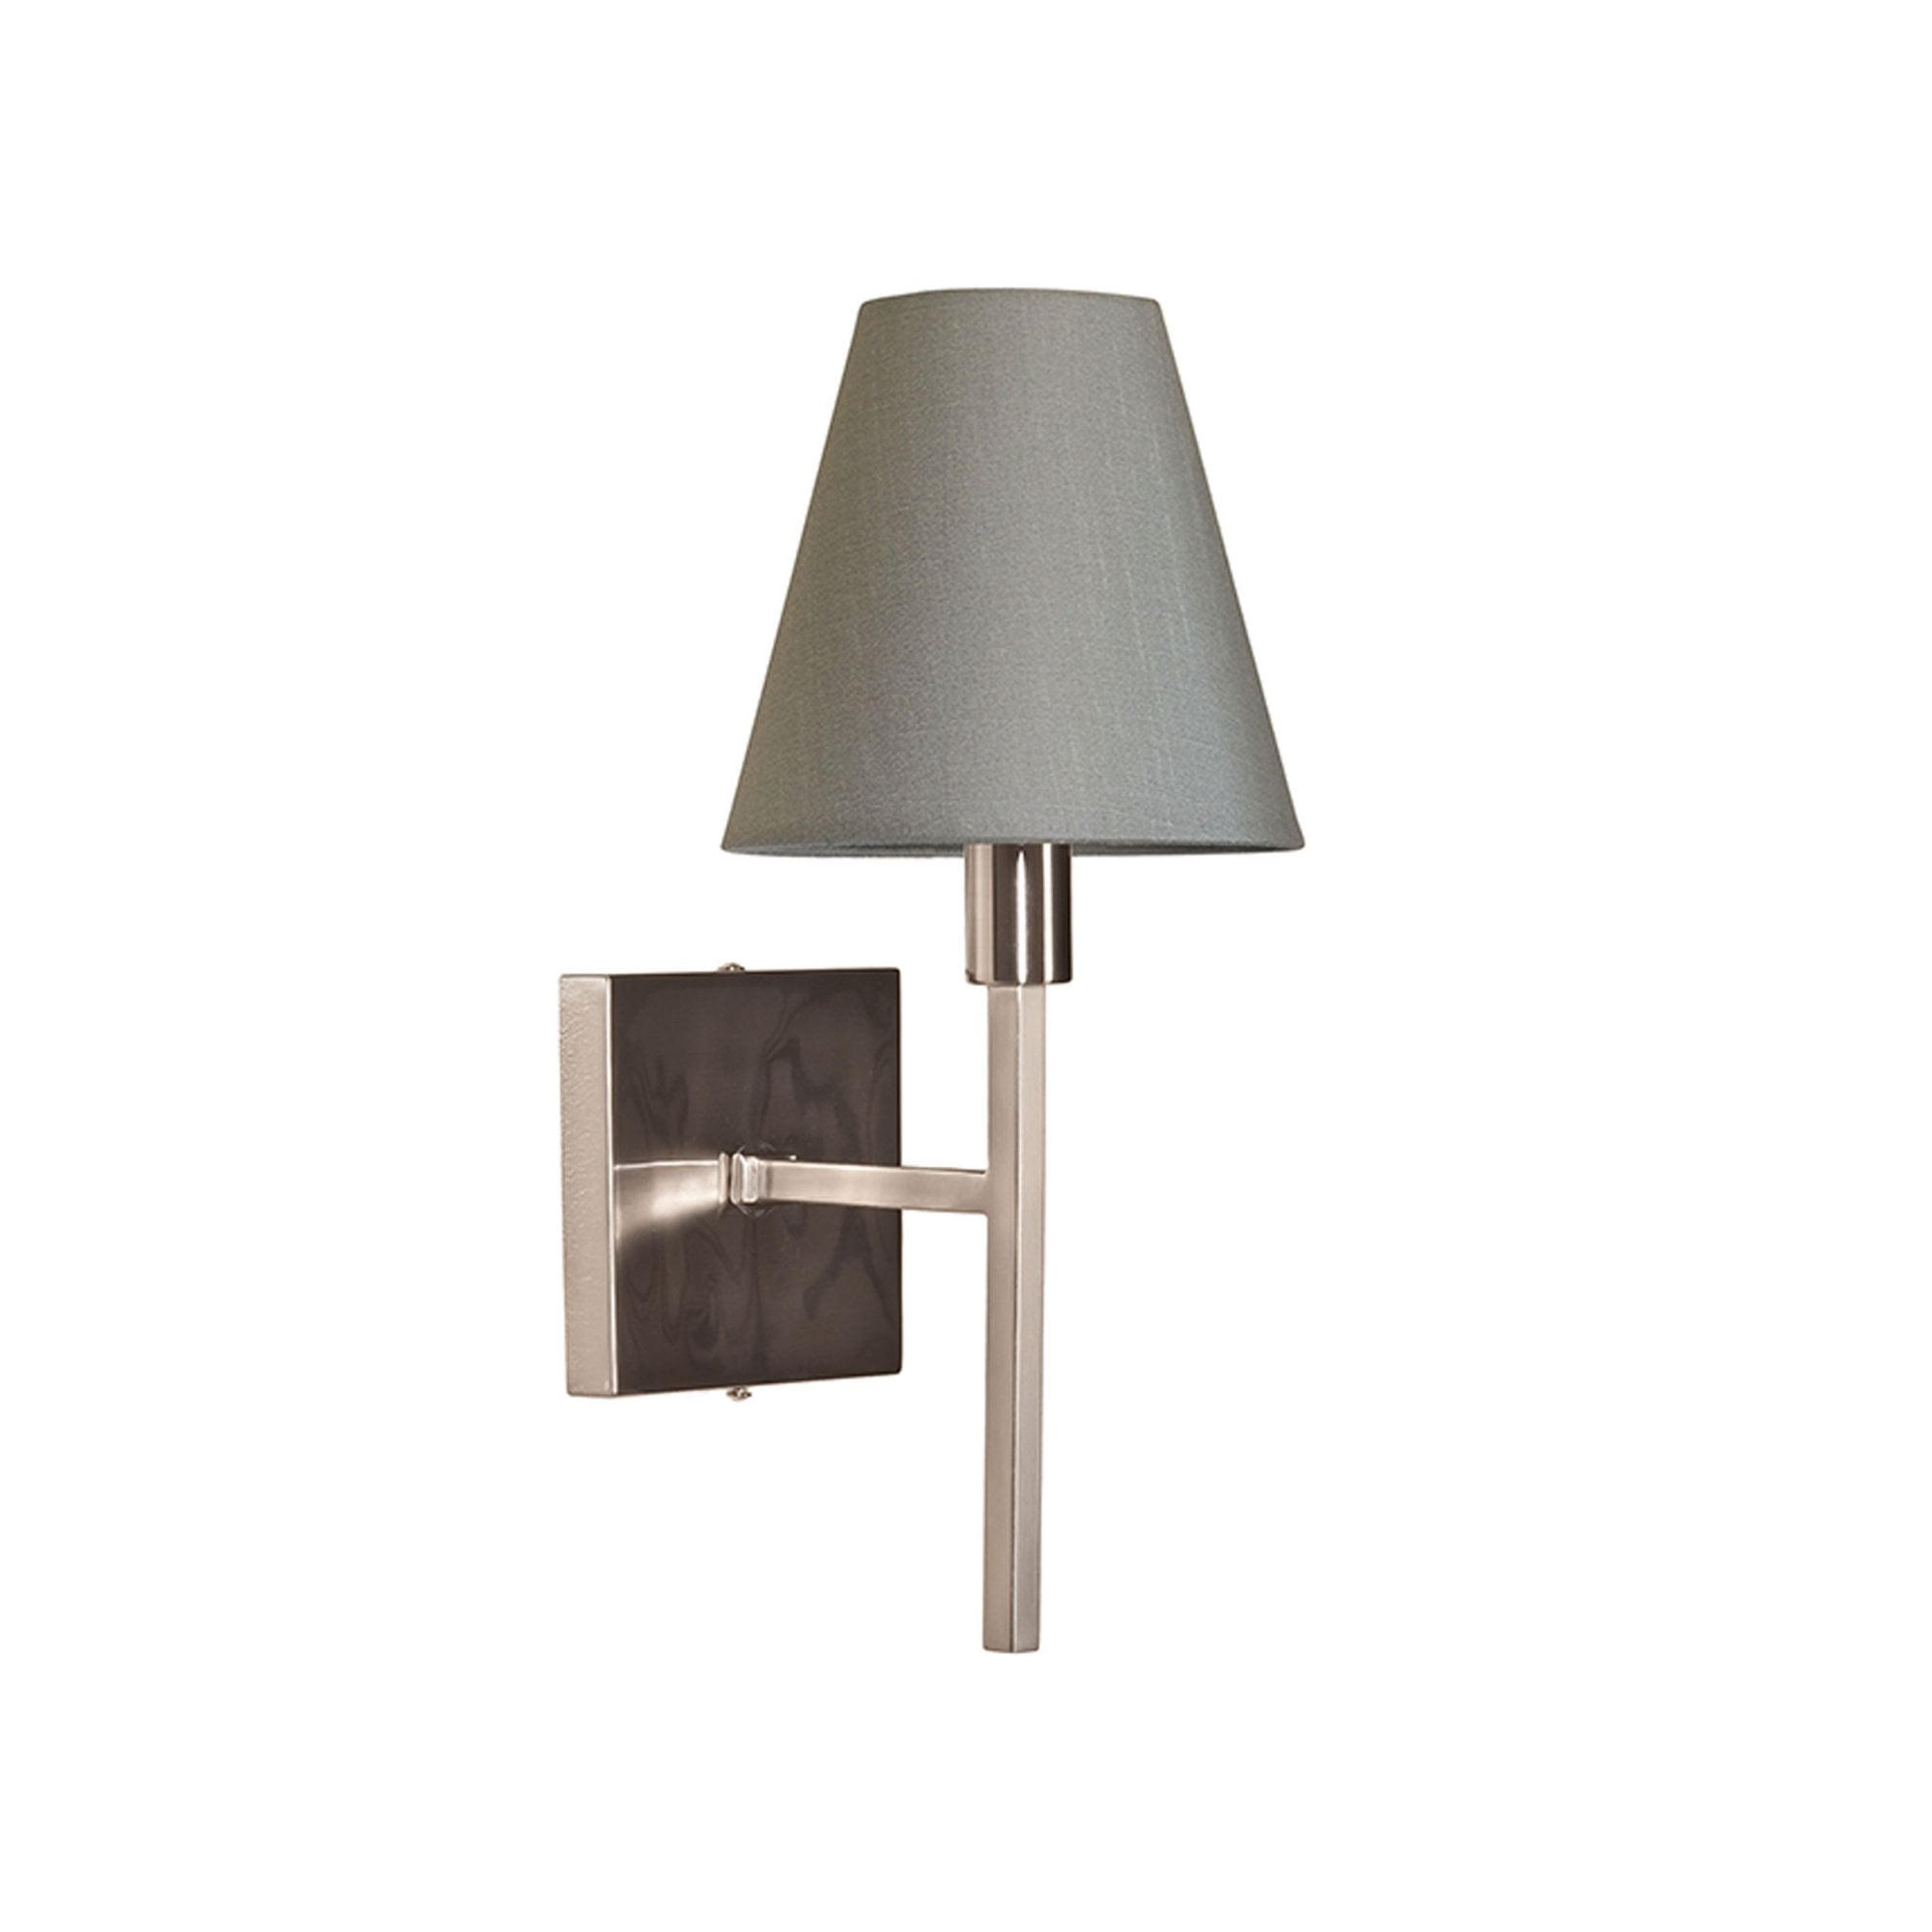 Elstead Lighting Lucerne Single Wall Light In Brushed Nickel Fitting Style From Dusk Lighting Uk